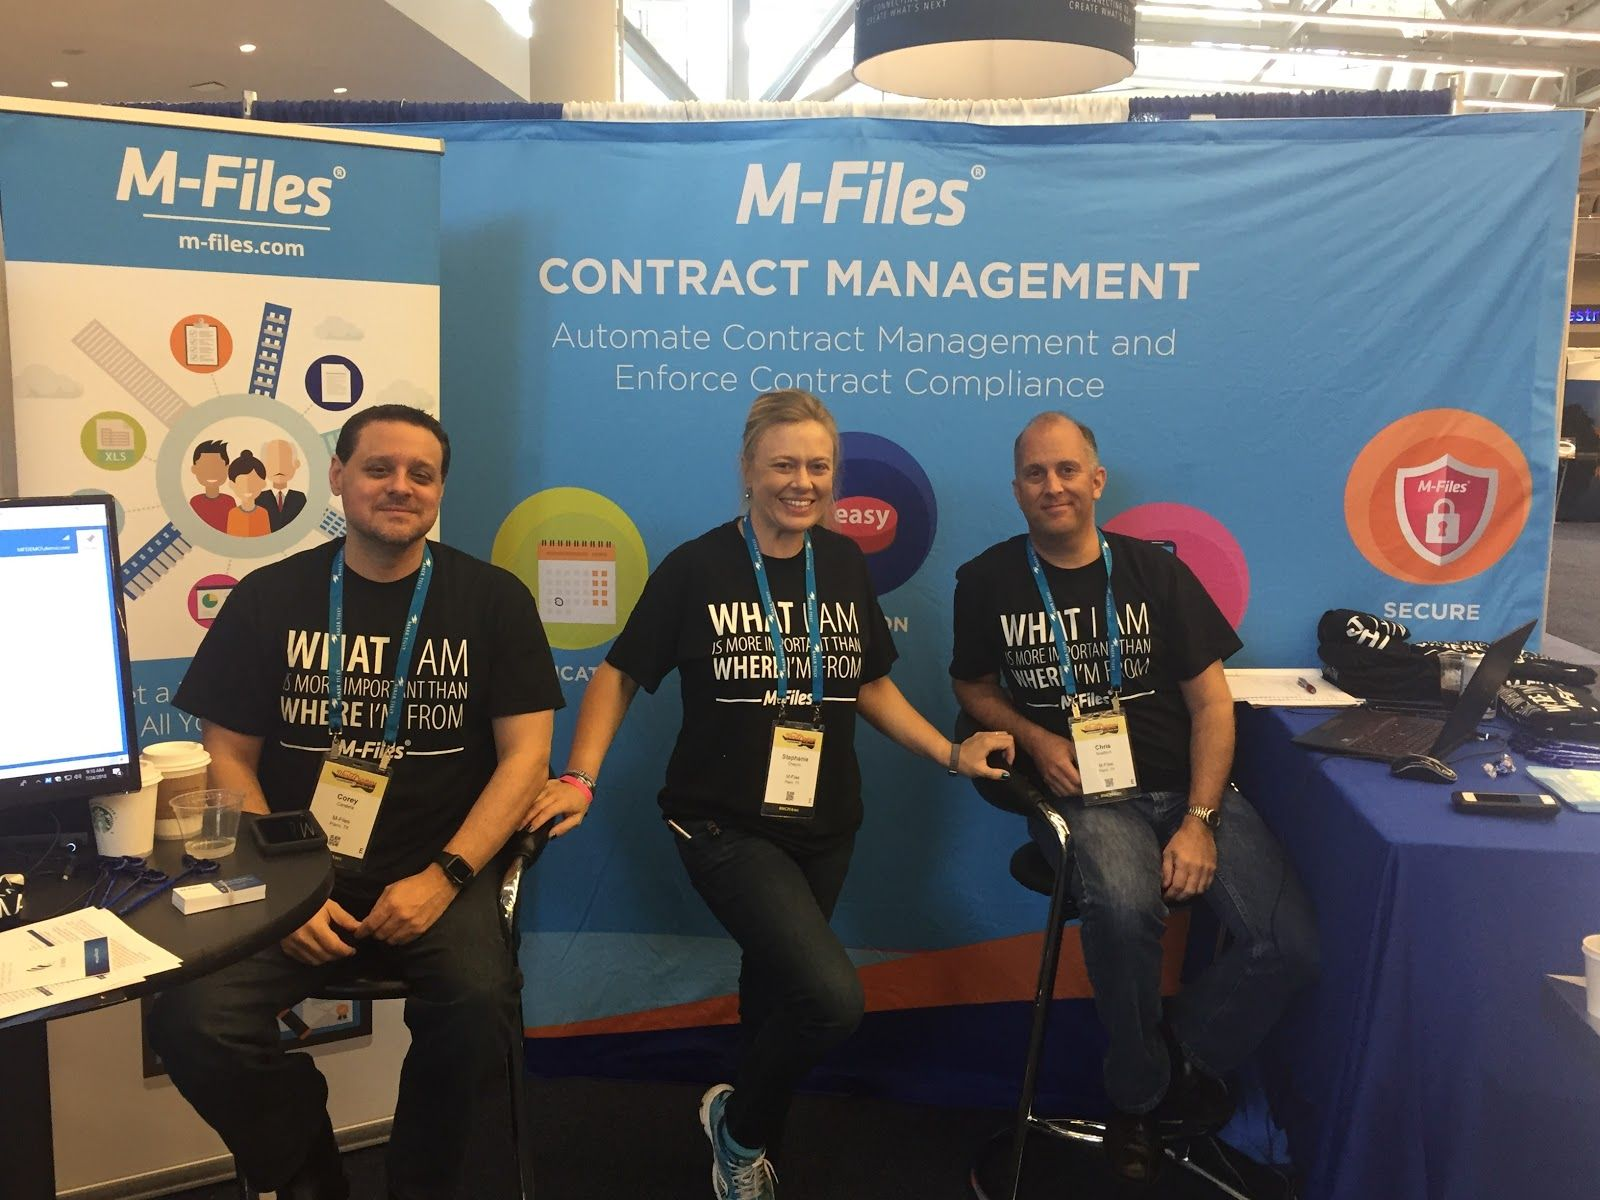 M-Files Contract Management automates contract management and enforces contract compliance